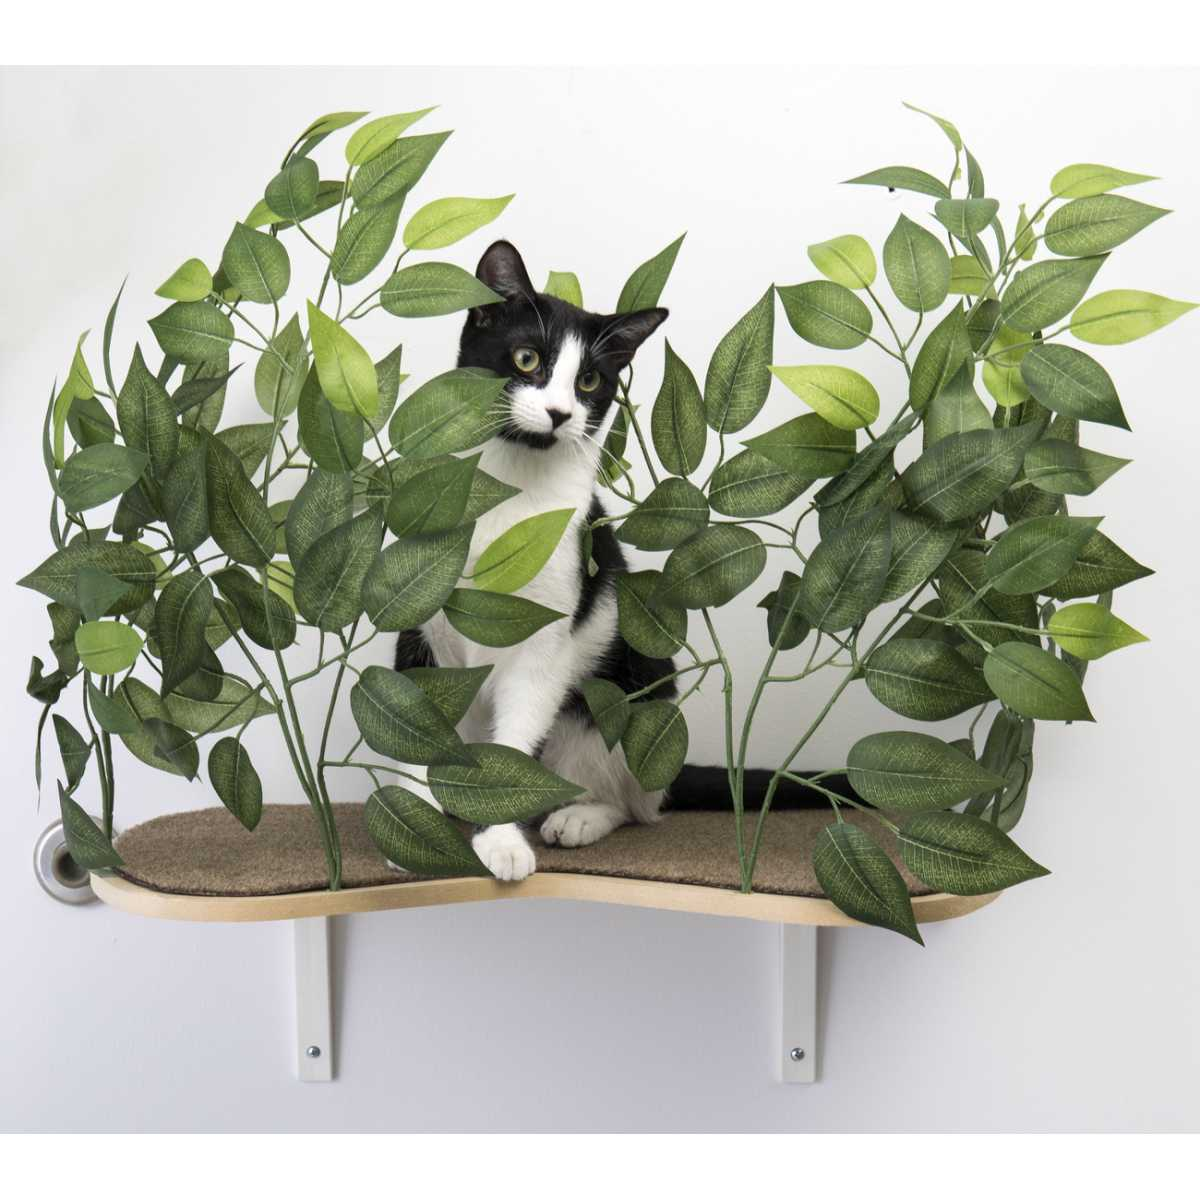 Canopy Cat Wall Shelves With Leaves Set Of 2